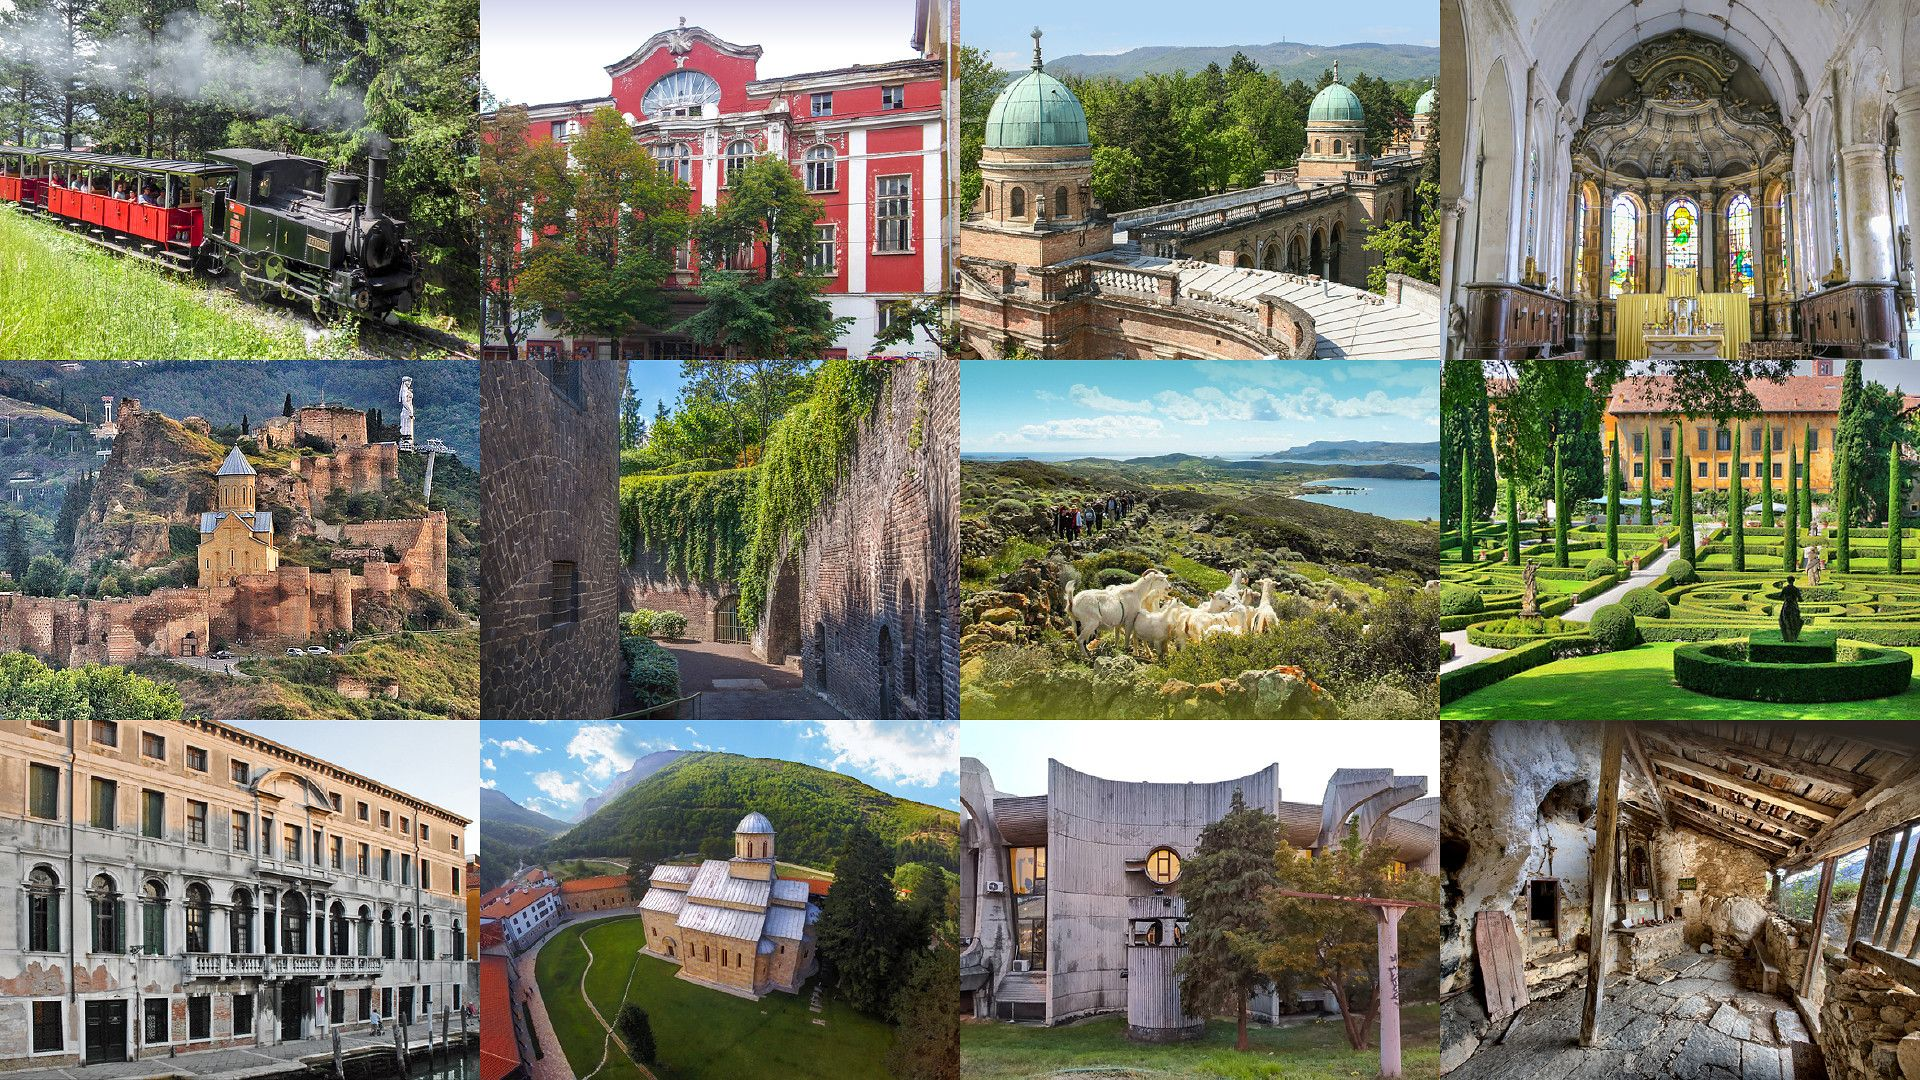 Europa Nostra has announced 12 candidates for its 2021 list of Europe's seven most endangered sites Courtesy of Europa Nostra